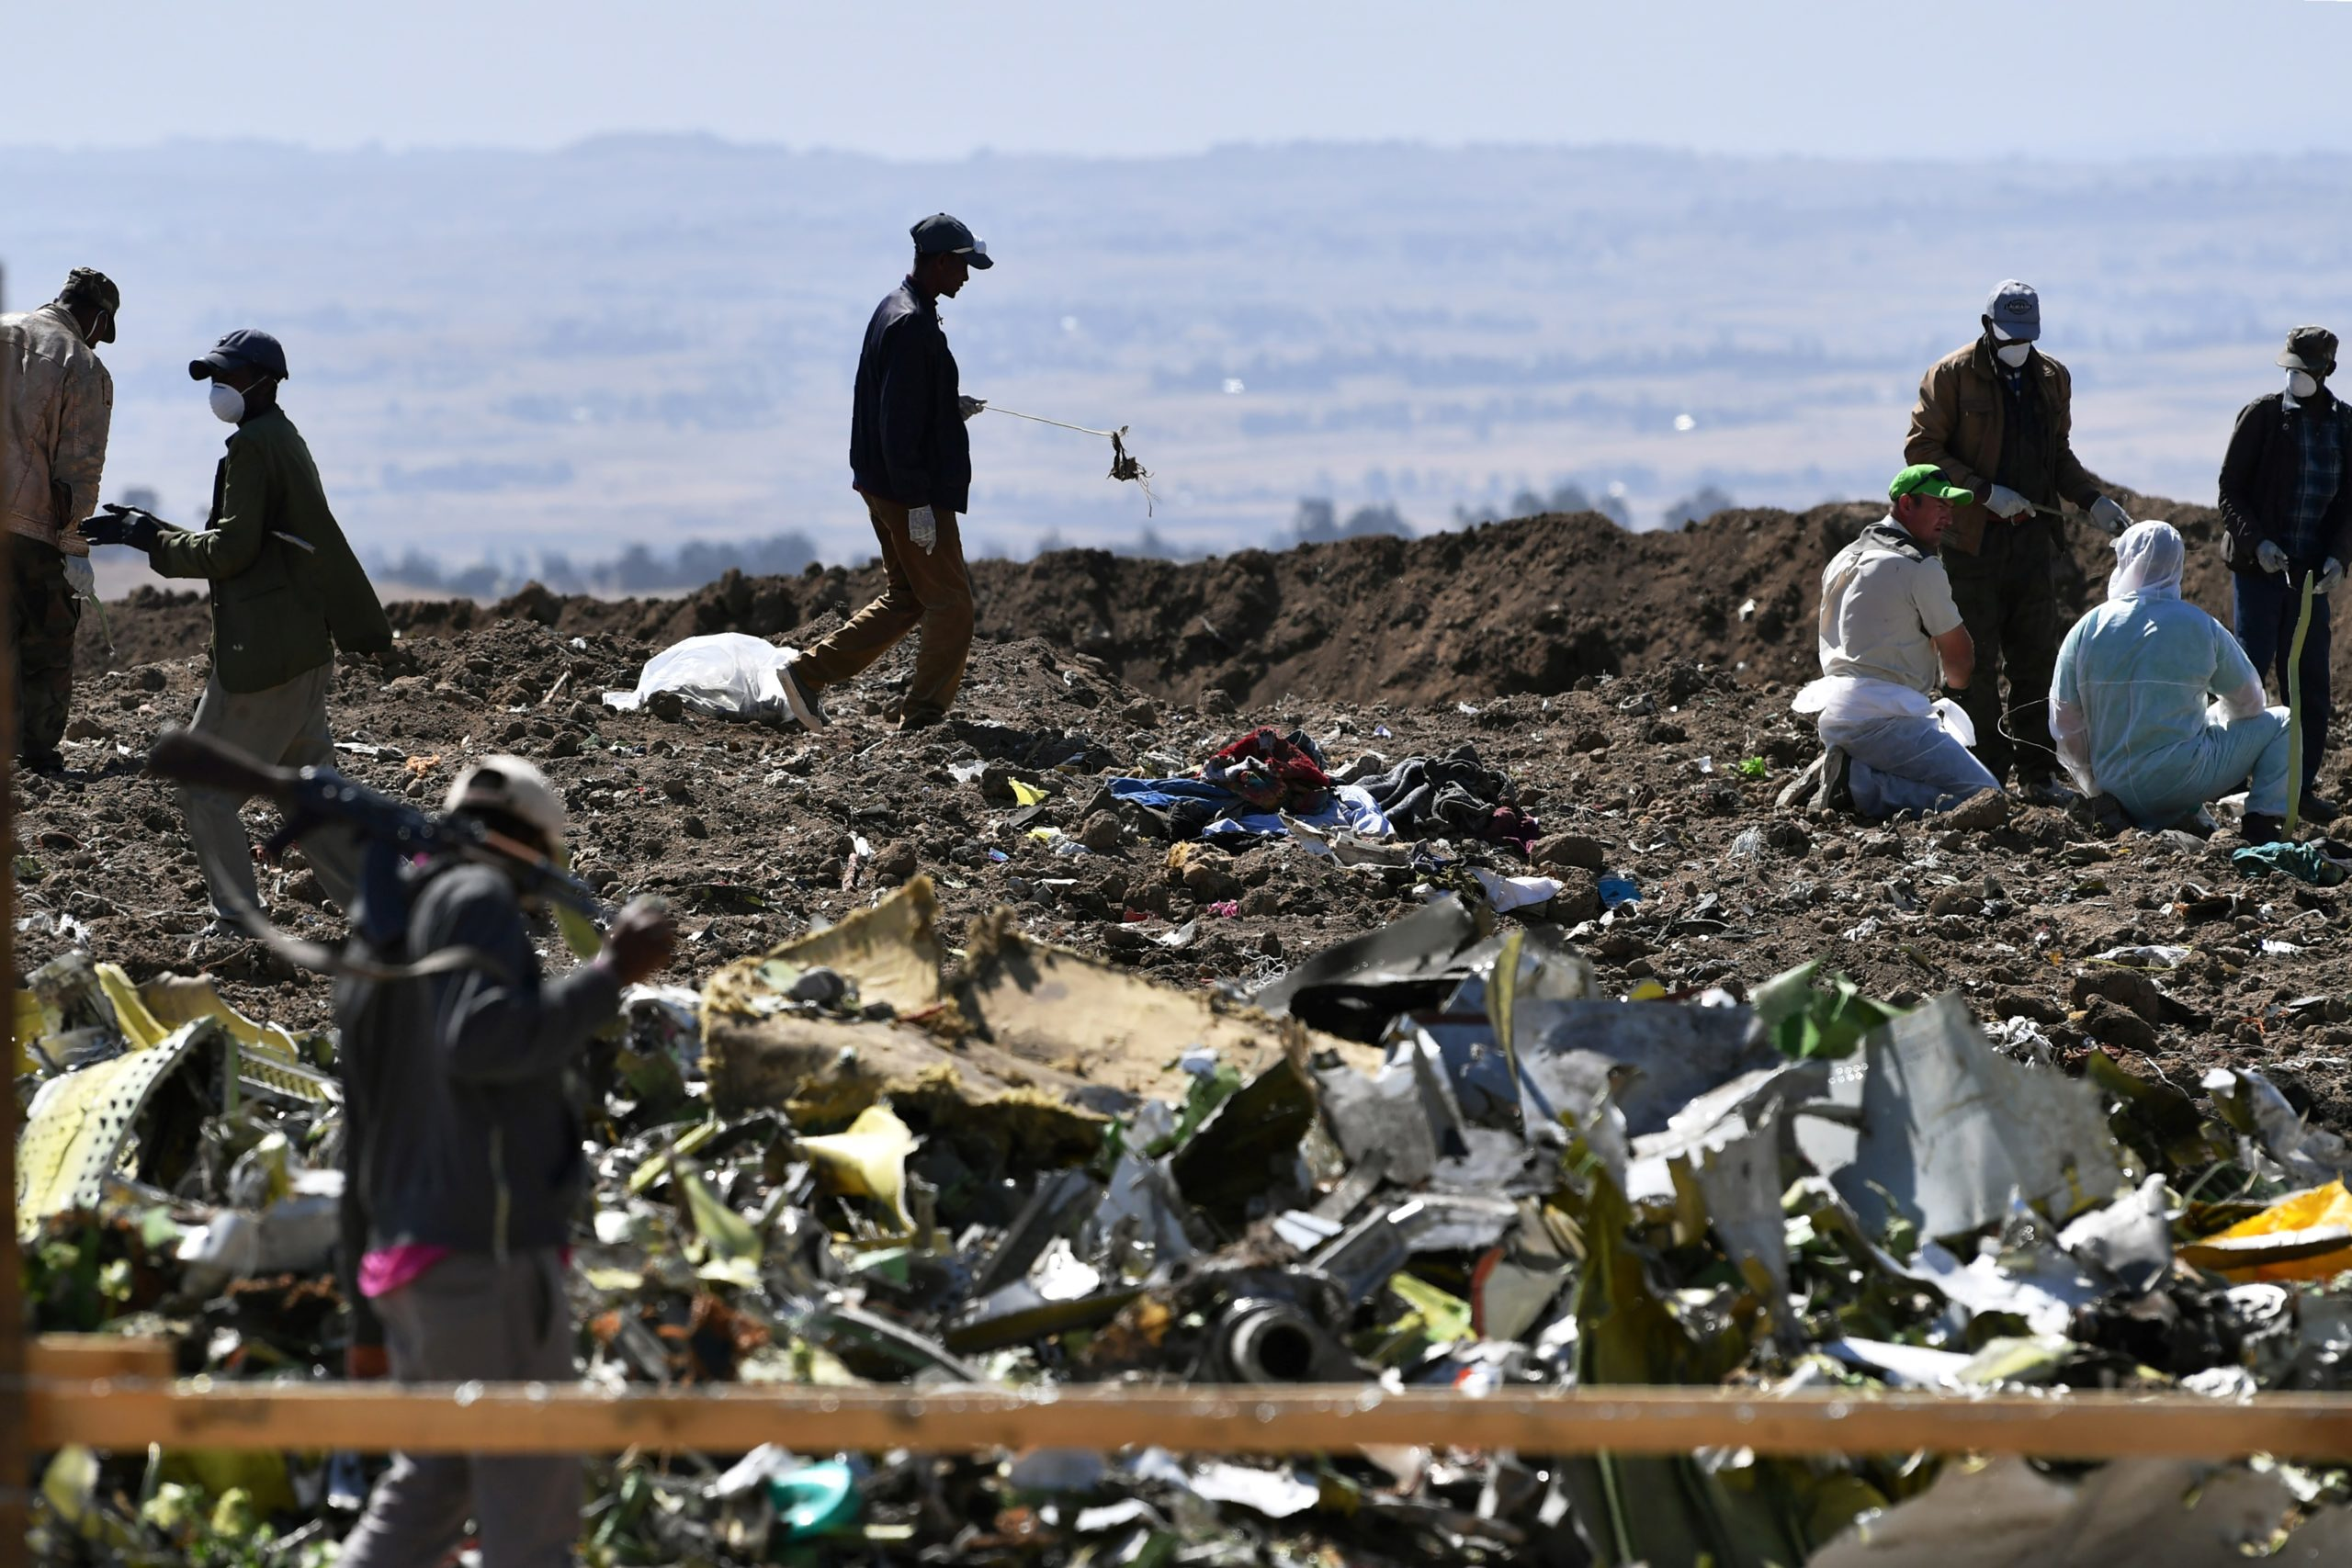 Oromo men hired to assist forensic investigators are at work at the crash site of an Ethiopian airways operated Boeing 737 MAX aircraft on March 16, 2019 at Hama Quntushele village near Bishoftu in Oromia region. - A French investigation into the March 10 Nairobi-bound Ethiopian Airlines Boeing 737 MAX crash that killed 157 passengers and crew opened on March 15 as US aerospace giant Boeing stopped delivering the top-selling aircraft. (Photo by TONY KARUMBA / AFP) (Photo credit should read TONY KARUMBA/AFP via Getty Images)